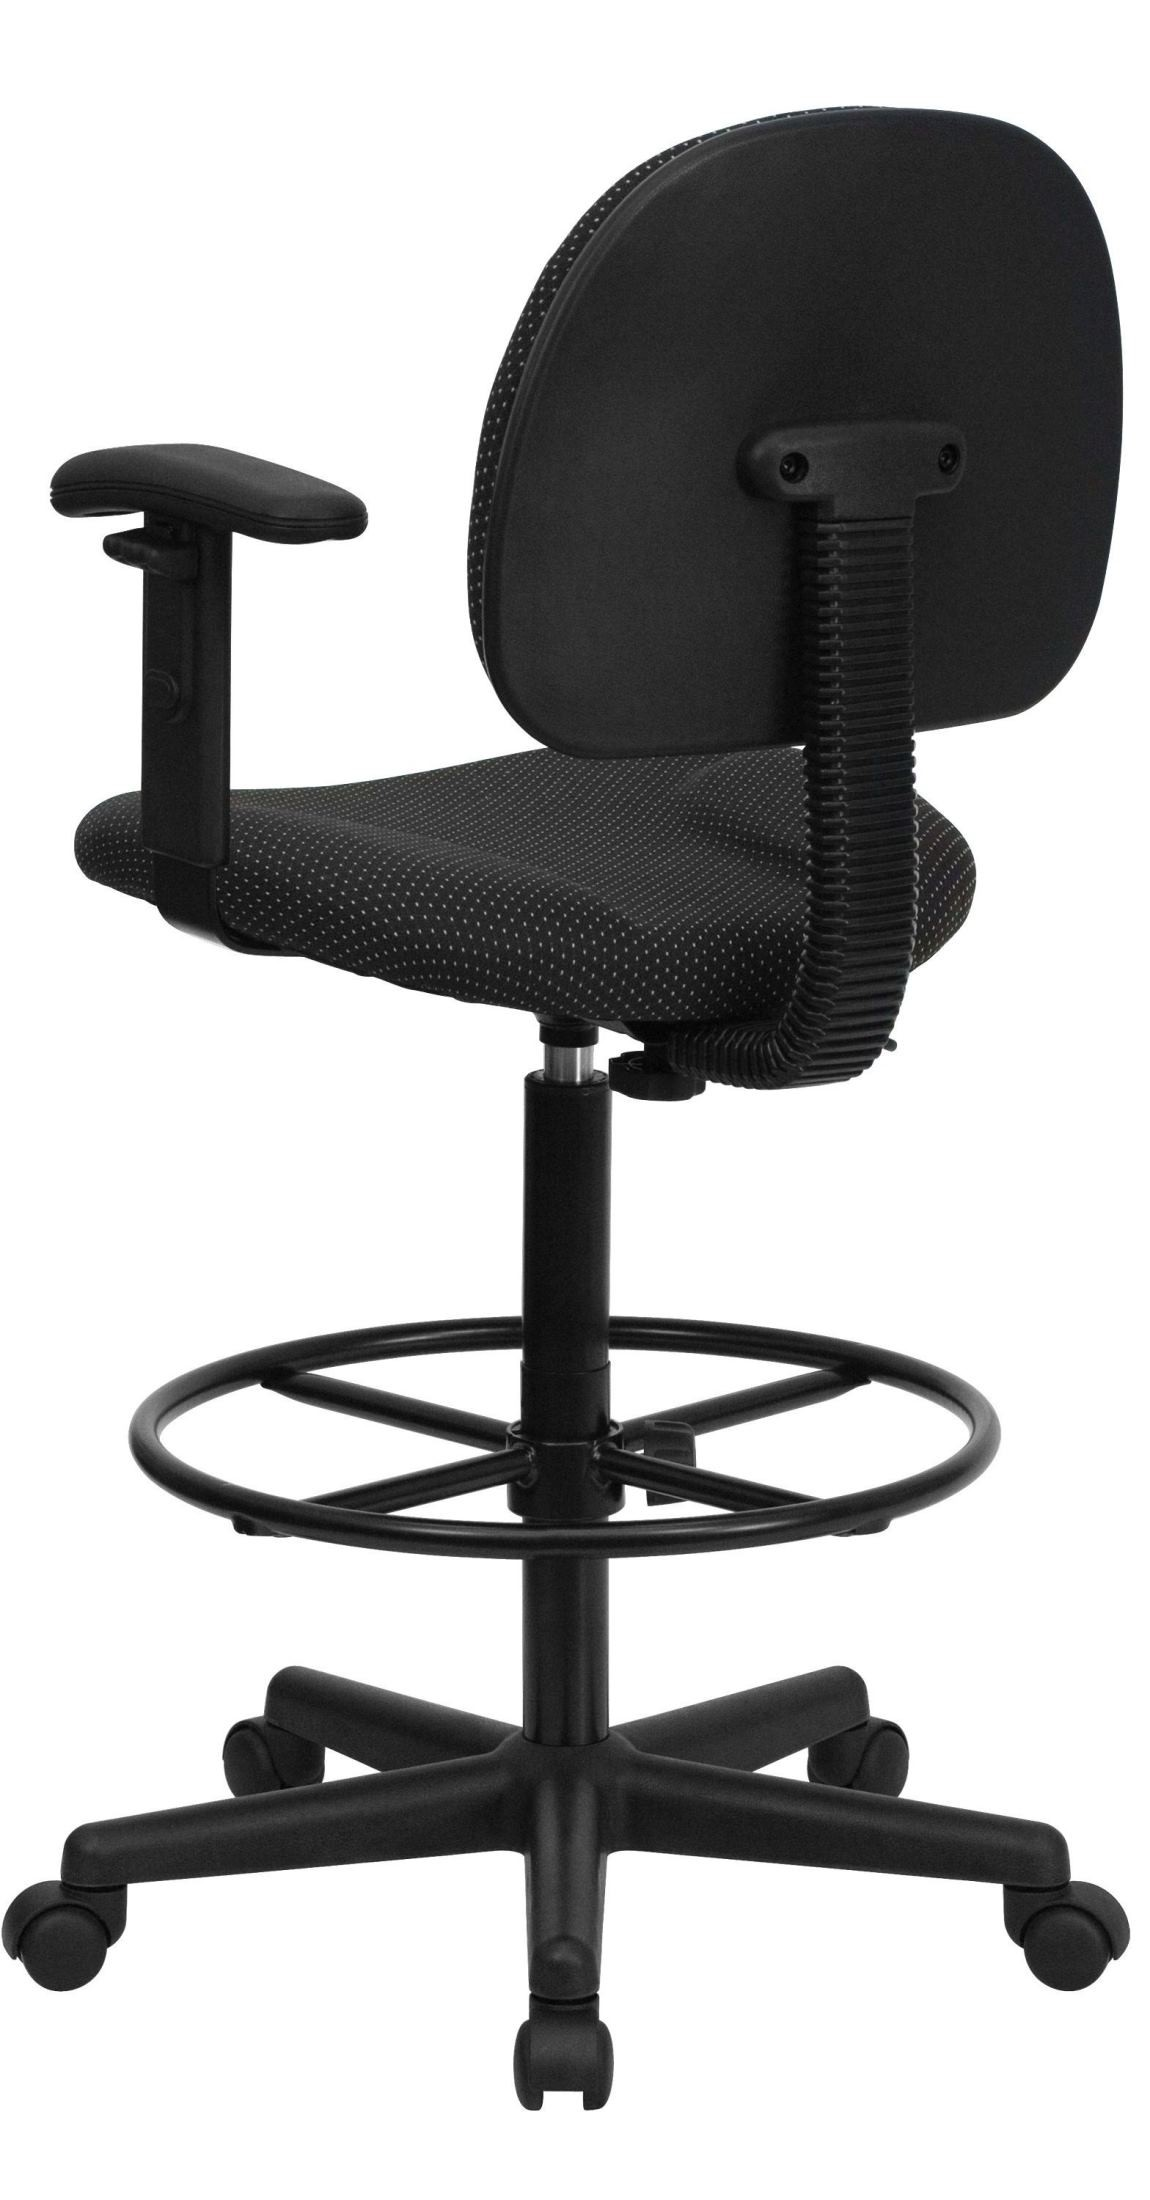 ergonomic drafting chair with arms old high parts black patterned fabric arm stool from